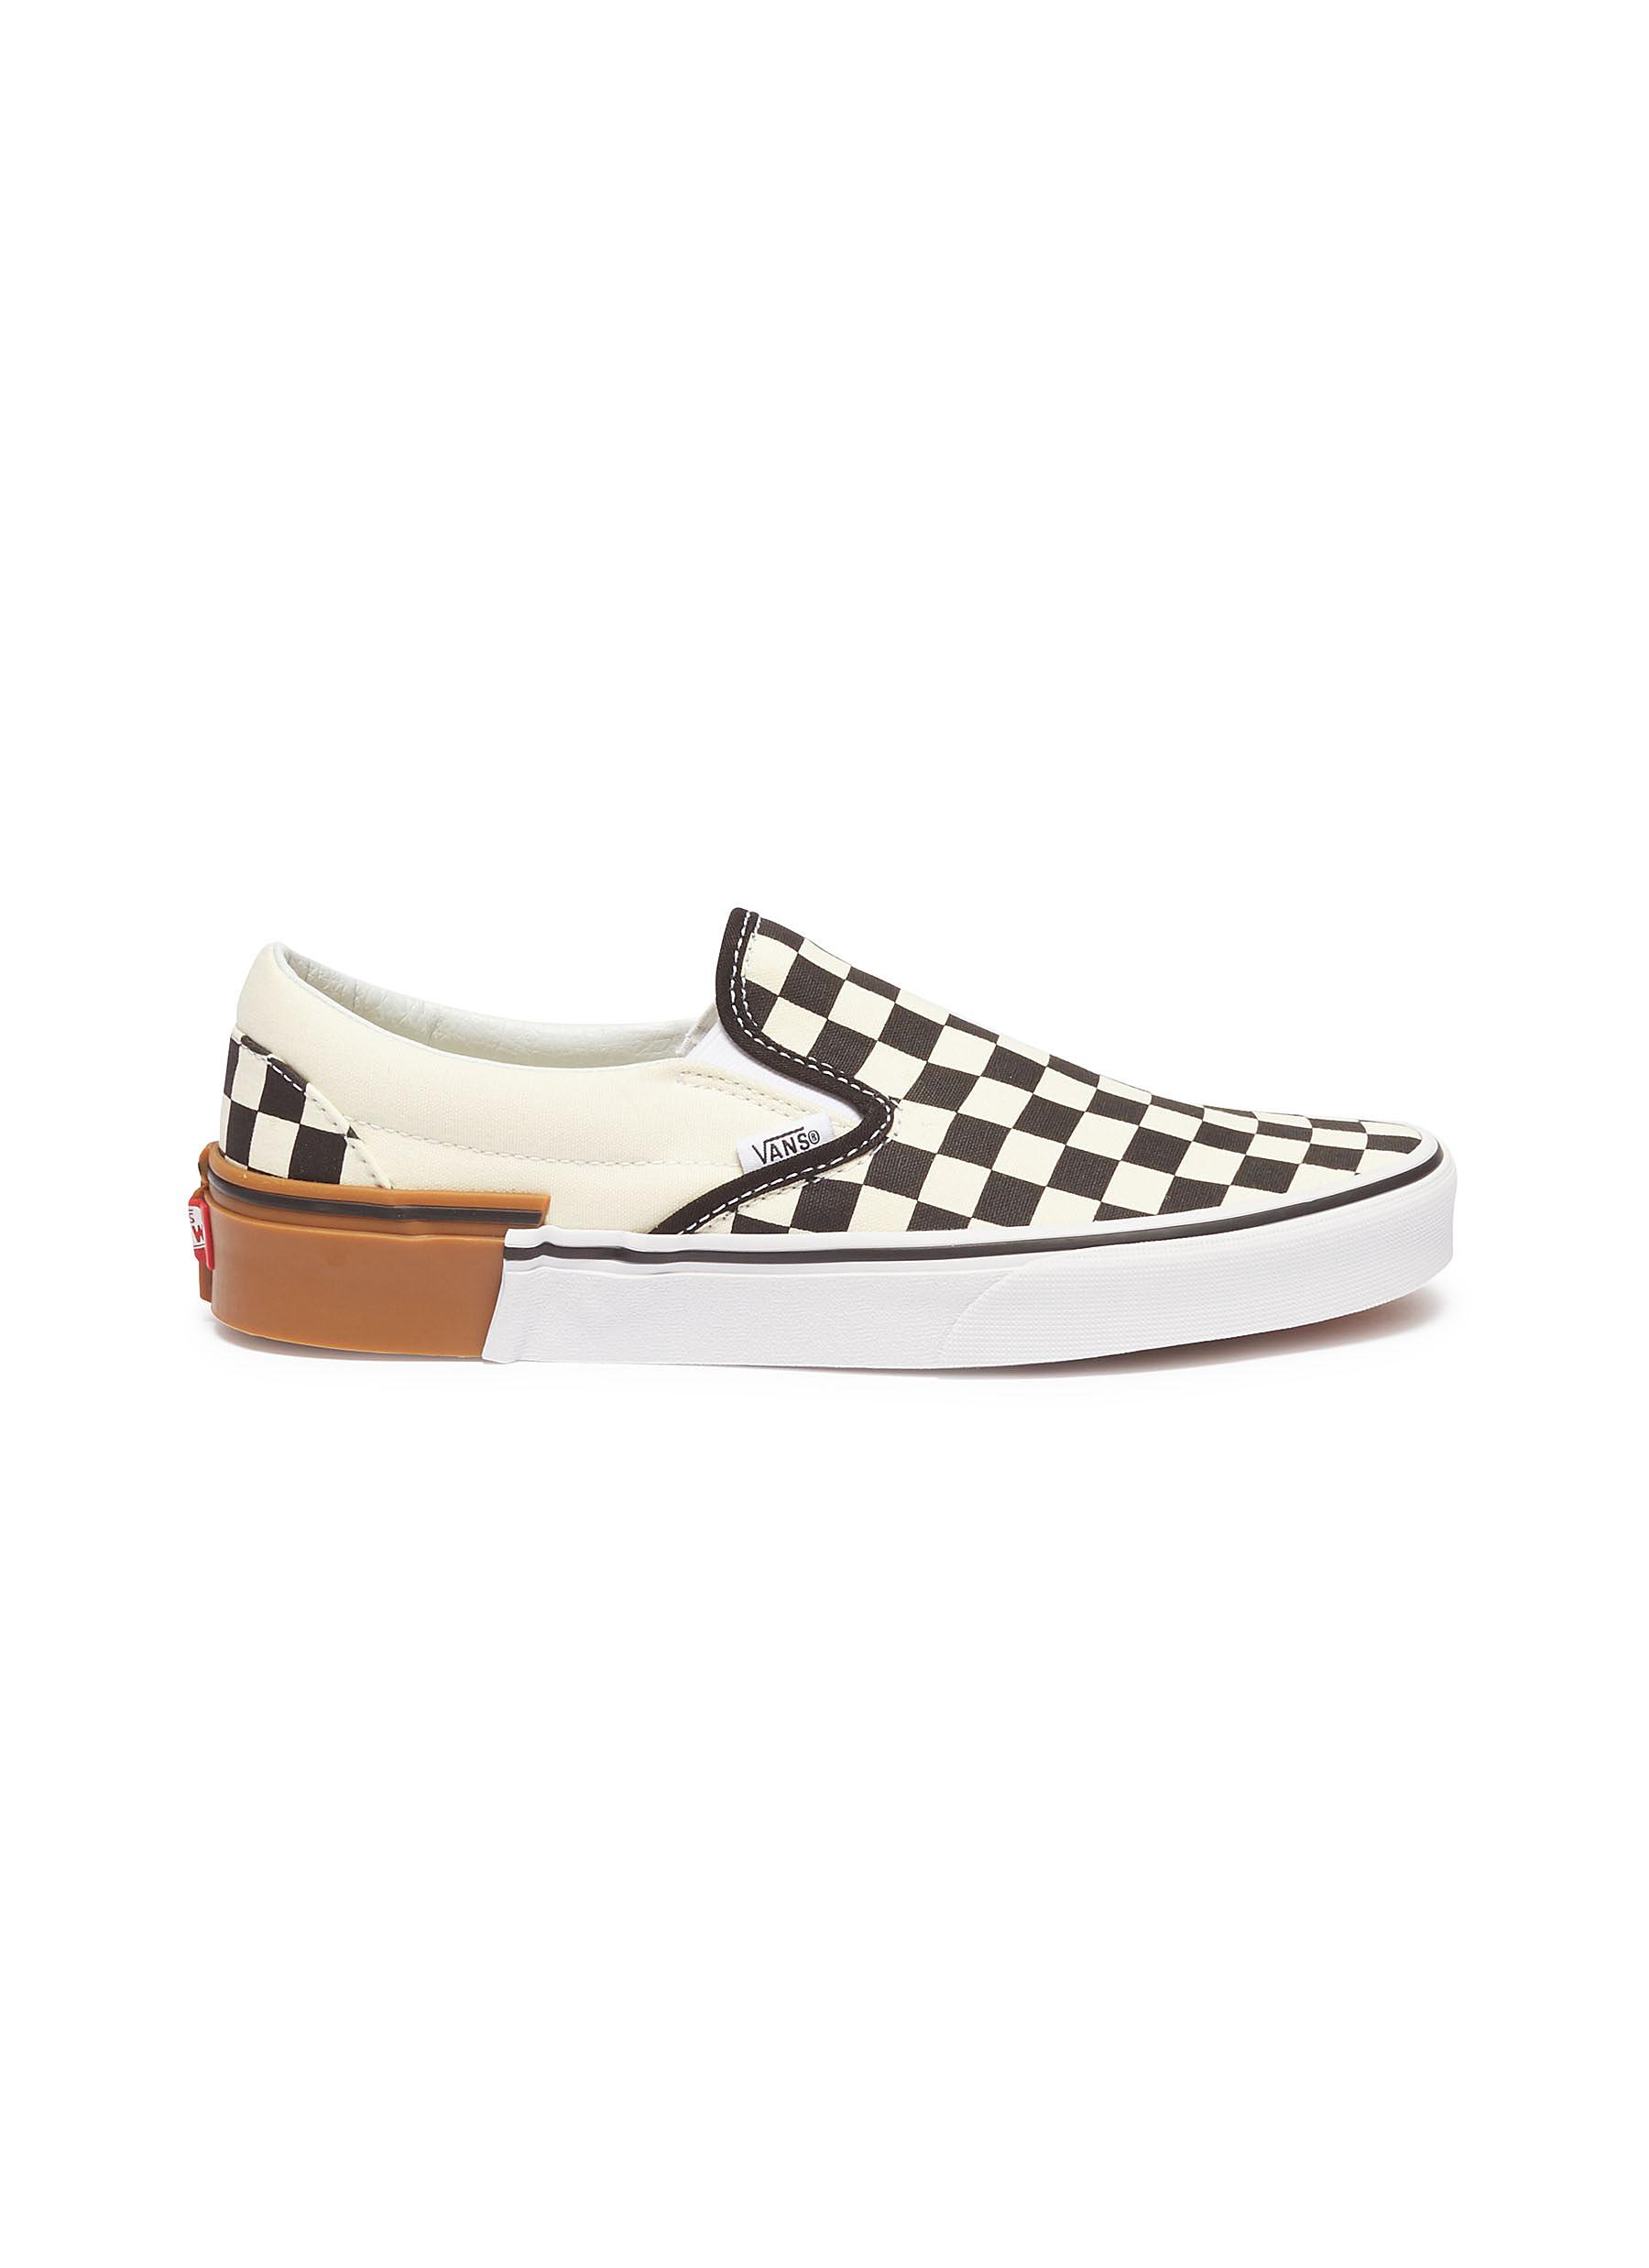 Gum Block Classic Slip On colourblock checkerboard skates by Vans